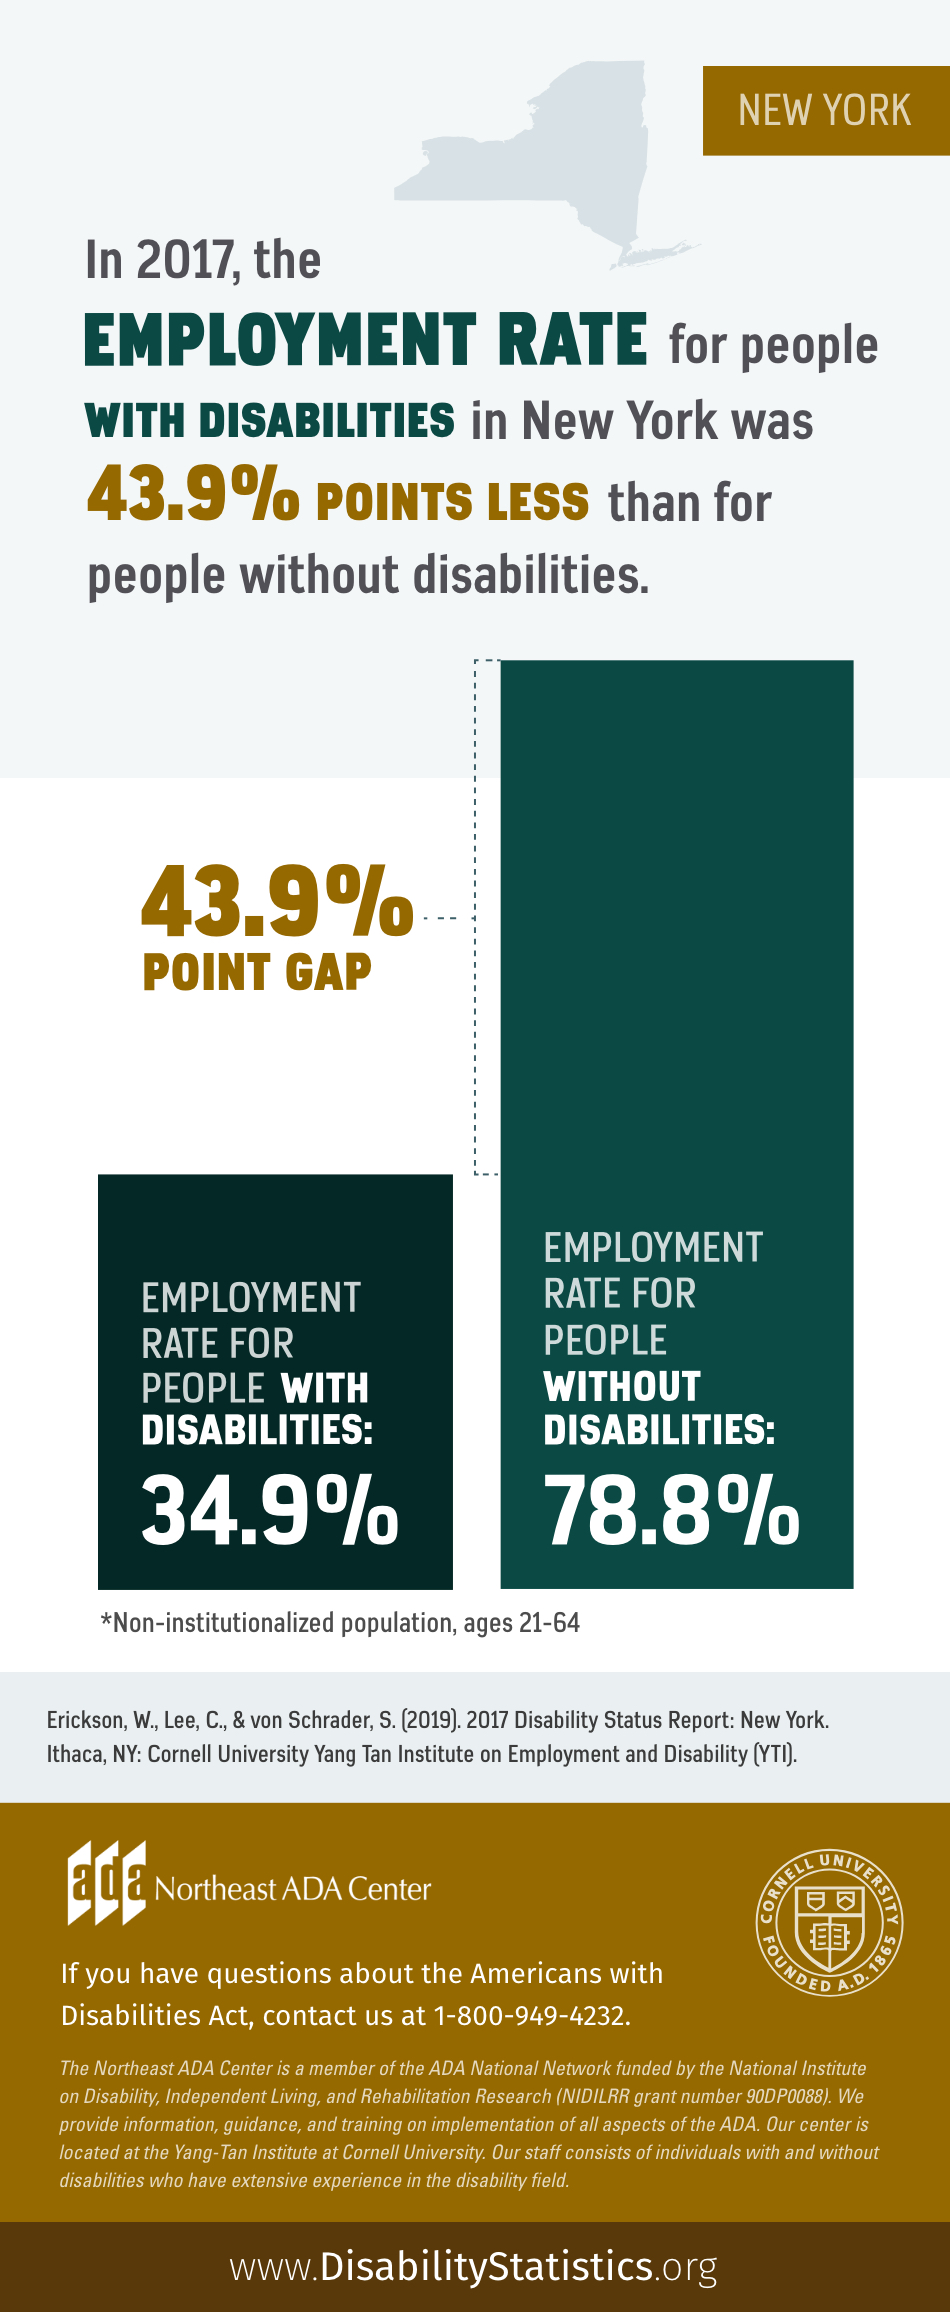 Infographic featuring text on top of an outline of New York State along with a bar graph showing employment rates for people with disabilities and people without disabilities in the New York State: In 2017, the Employment Rate for people with disabilities in New York was 43.9% points less than for people without disabilities. The Employment rate for people with disabilities was 34.9%. The Employment rate for people without disabilities was 78.8%. Statistics for non-institutionalized population, ages 21-64. Source: Erickson, W., Lee, C., & von Schrader, S. (2019). 2017 Disability Status Report: United States. Ithaca, NY: Cornell University Yang-Tan Institute on Employment and Disability (YTI). If you have questions about the Americans with Disabilities Act, contact the Northeast ADA Center at 1-800-949-4232.